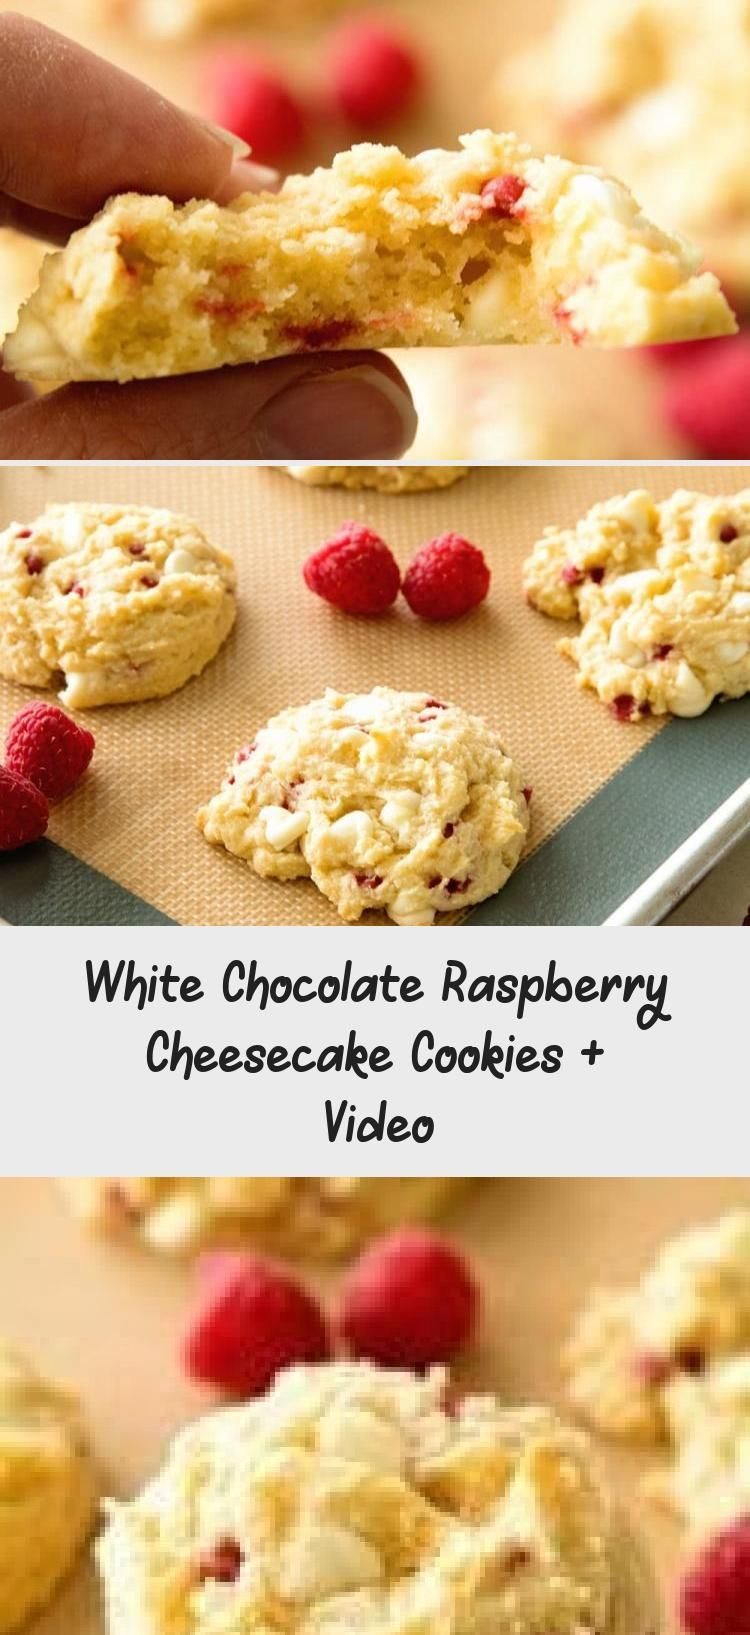 White Chocolate Raspberry Cheesecake Cookies + Video #whitechocolateraspberrycheesecake Delicious White Chocolate Raspberry Cheesecake Cookies are made with a muffin mix and delicious! They are Copycat Subway Cookies! I've even been told they are better than Subway's! #cookies #recipe via @julieseats #FoodandDrinkCookies #whitechocolateraspberrycheesecake